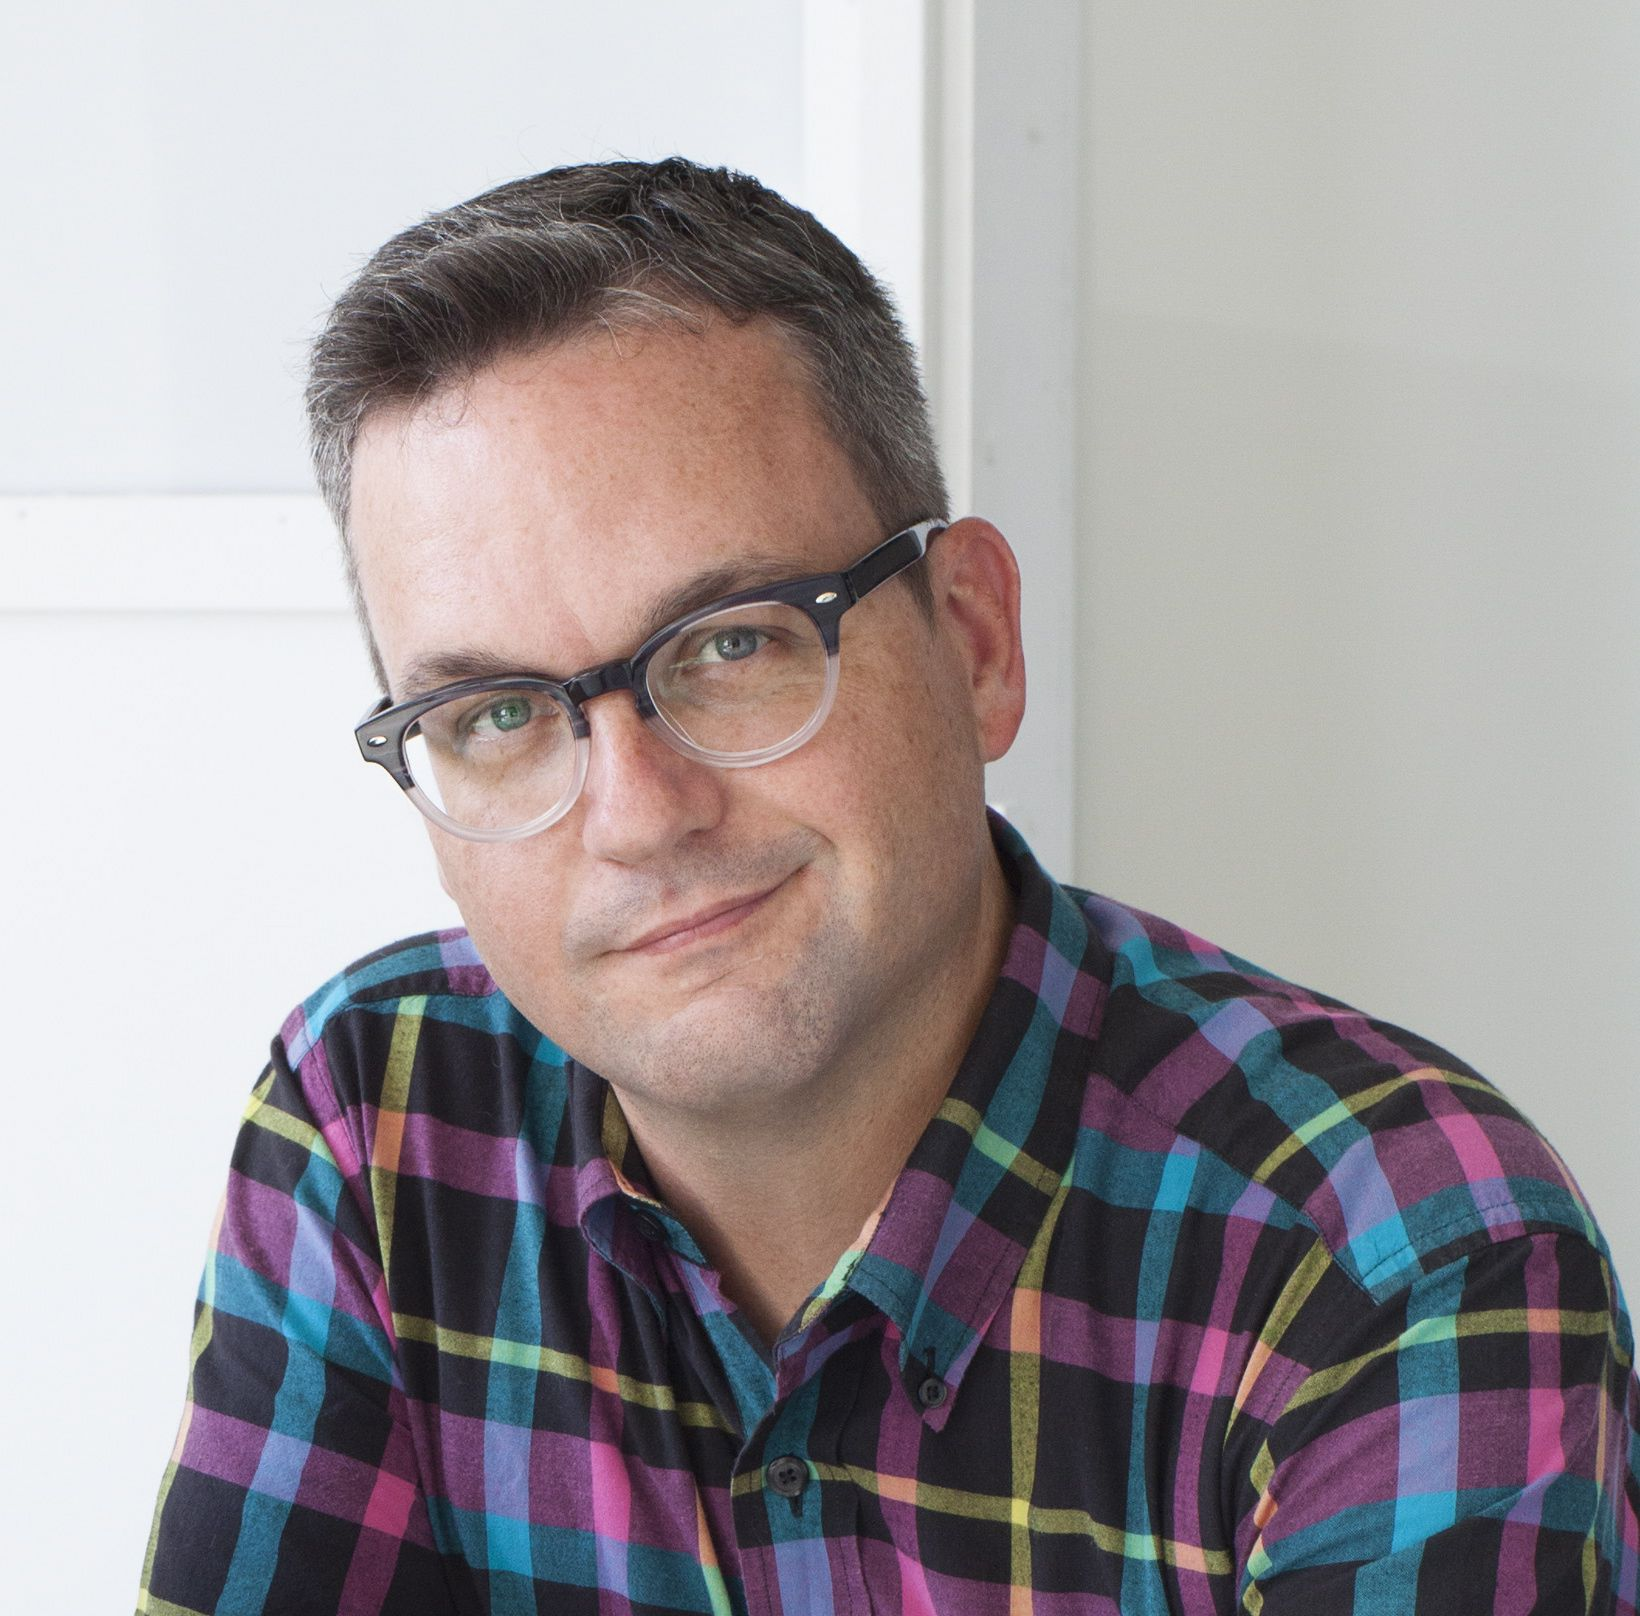 Texas native Jeffrey Cranor is the co-creator of the hit podcast 'Welcome to Night Vale' and co-author of the bestselling novel of the same name. He tells the story of a strange sighting outside his house in upstate New York.  Photograph: The Dallas Morning News Archives